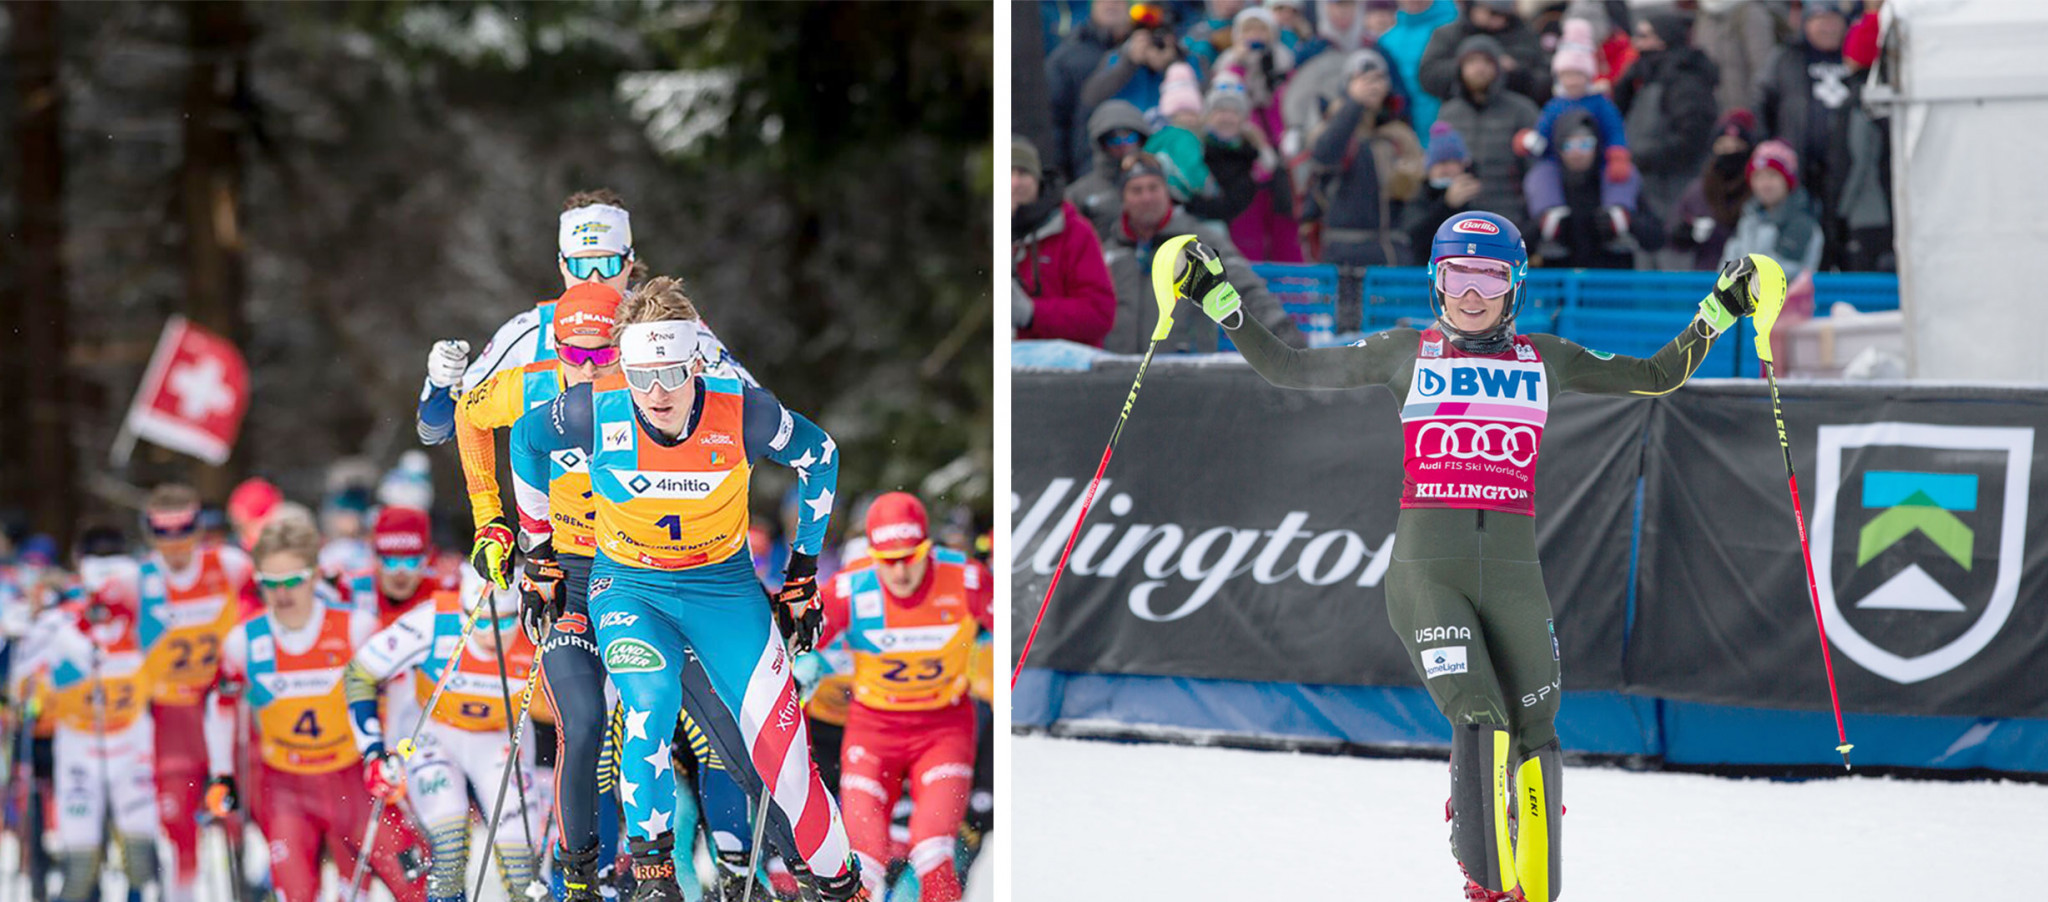 Gus Schumacher and Mikaela Shiffrin were are only the second joint recipients of the Beck International Award ©US Ski and Snowboard